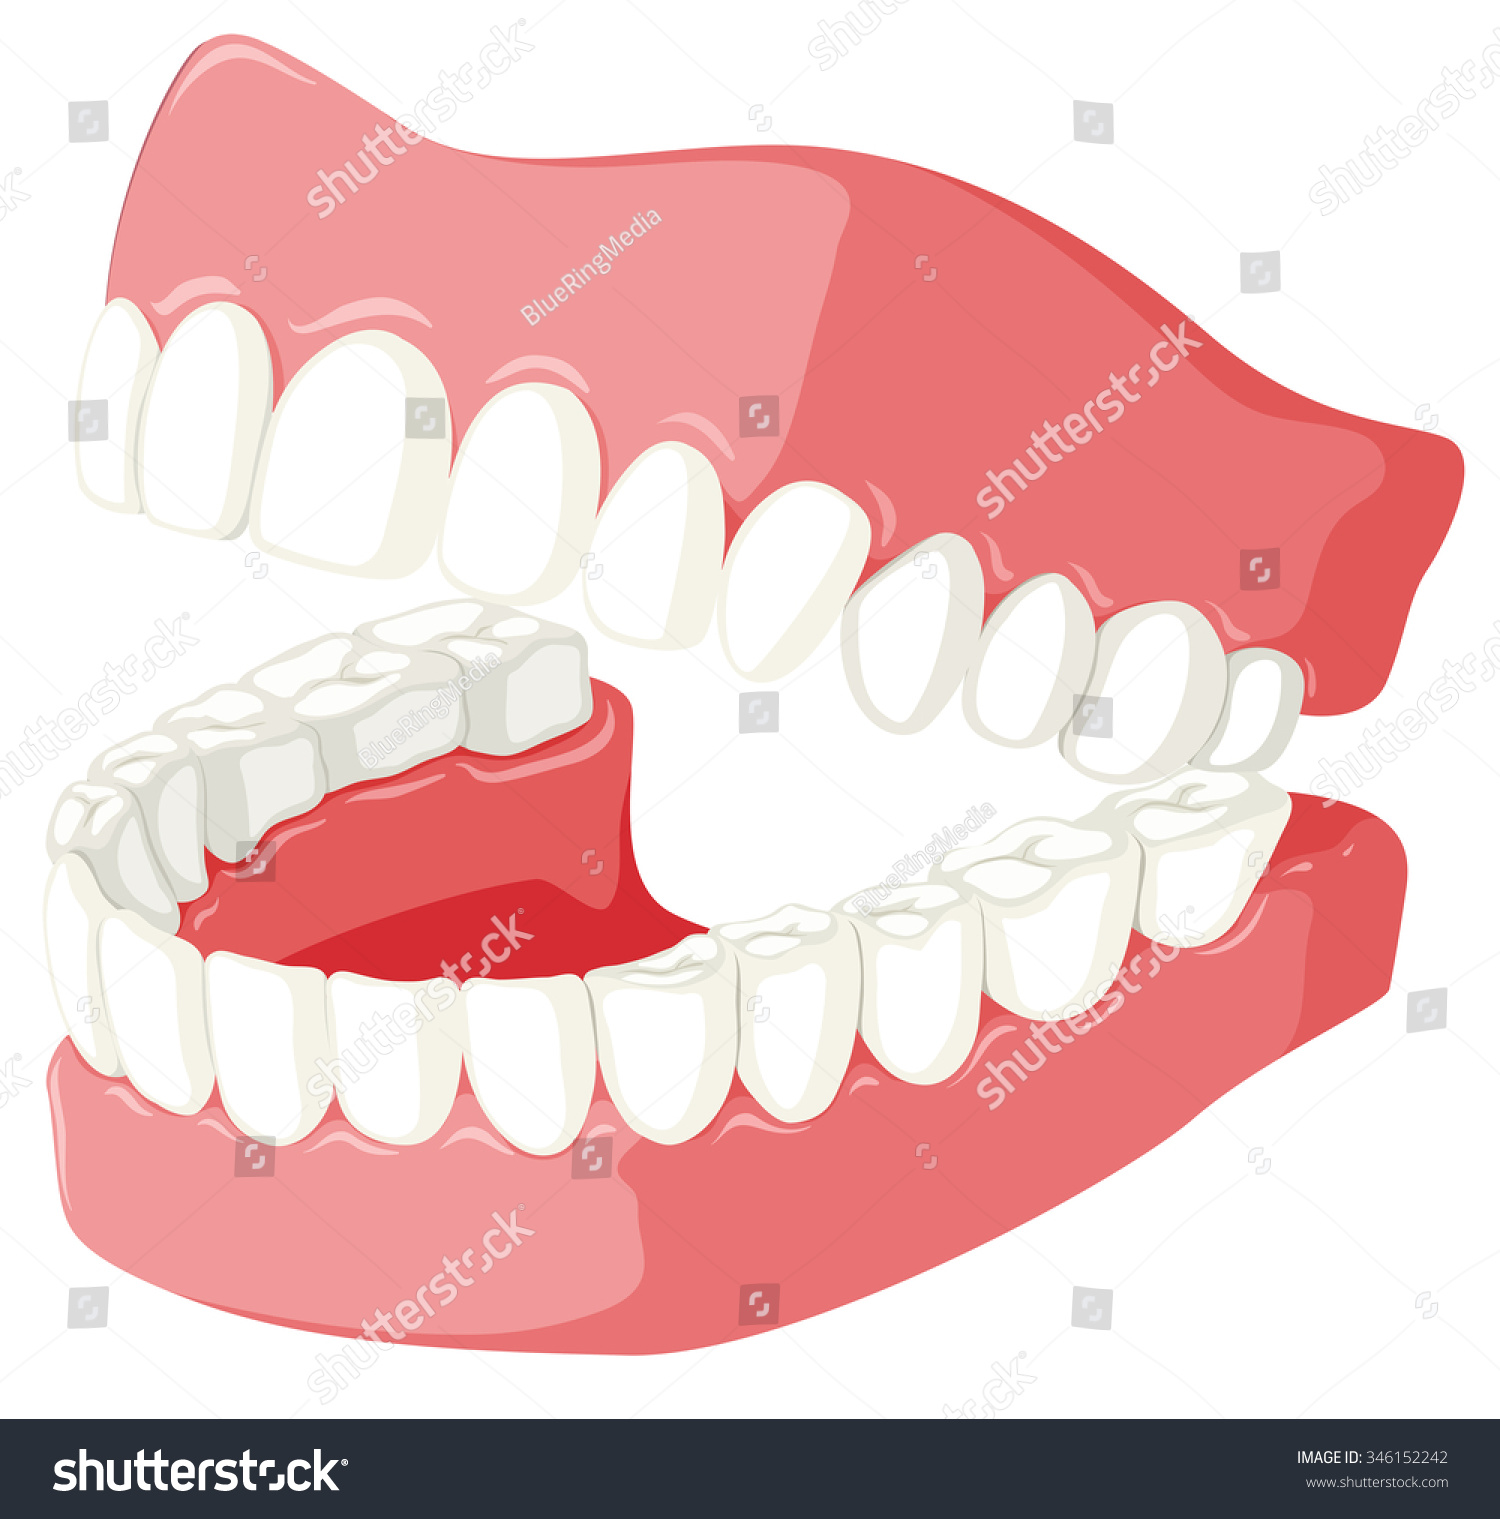 346152242 likewise Hr108 further 36000 together with Top 65 Cattle Clipart as well Everybody Up Starter Unit 8 Flash Cards. on cartoon mouth clipart